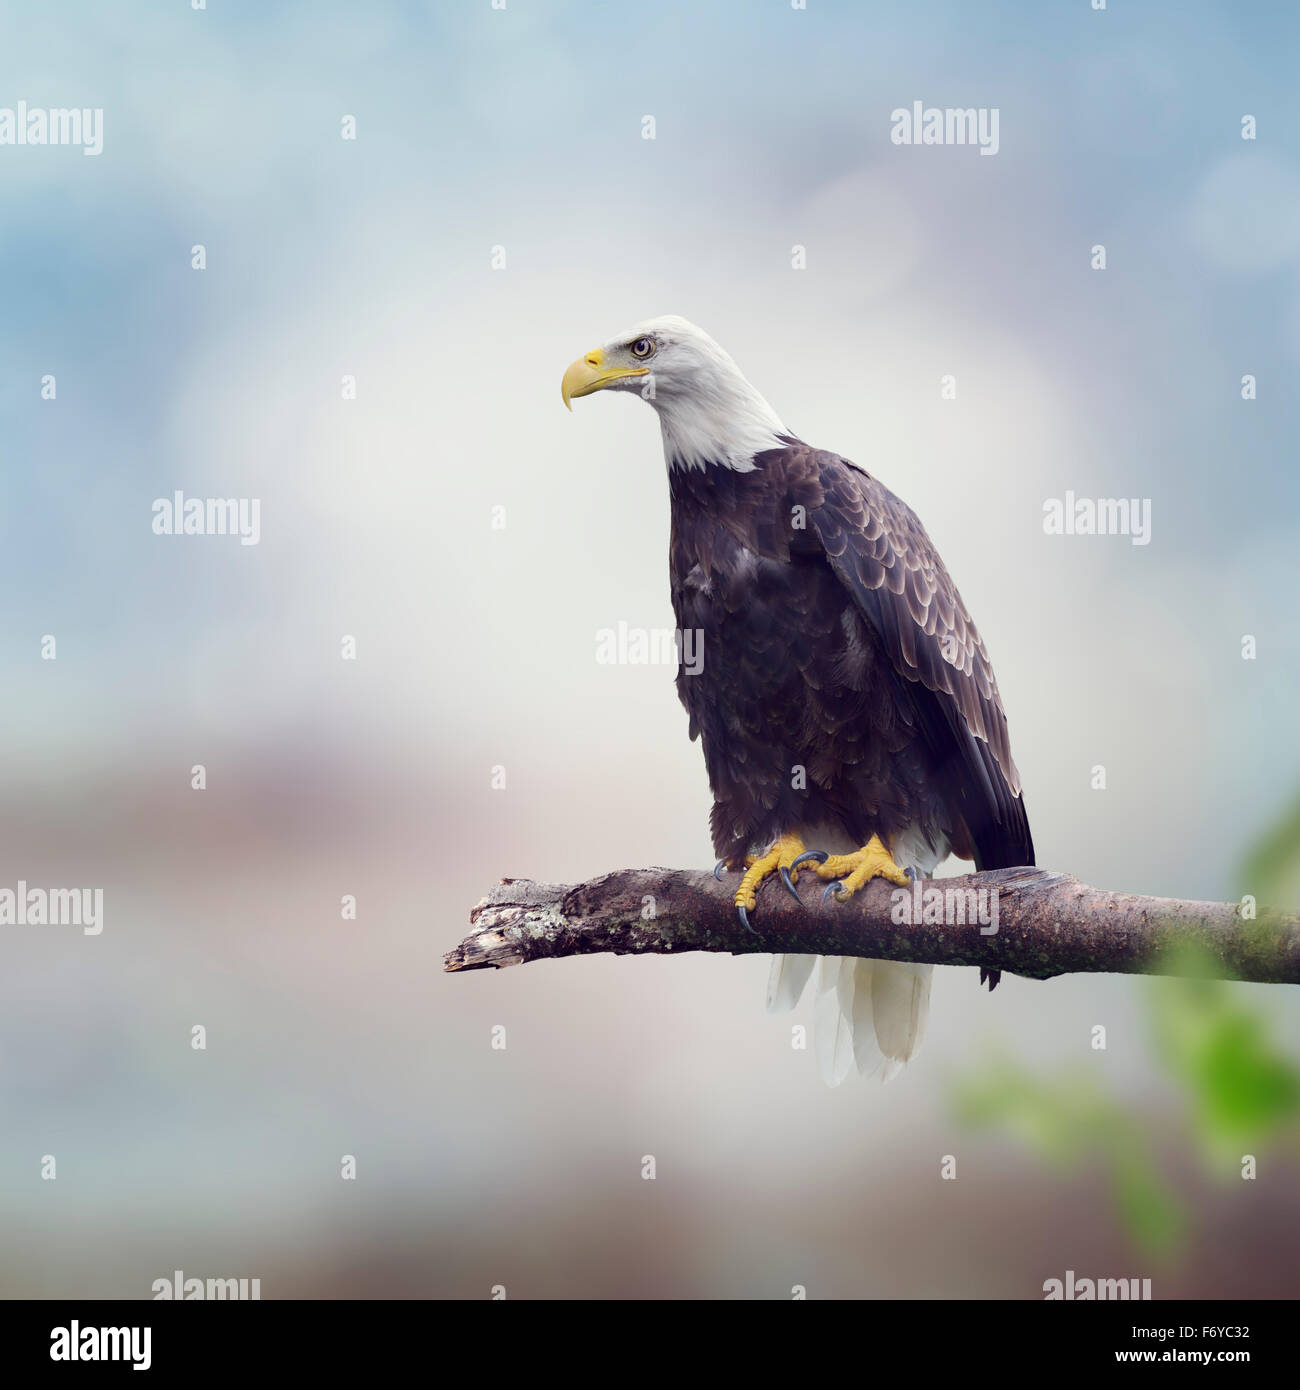 Bald Eagle on a Tree Branch - Stock Image